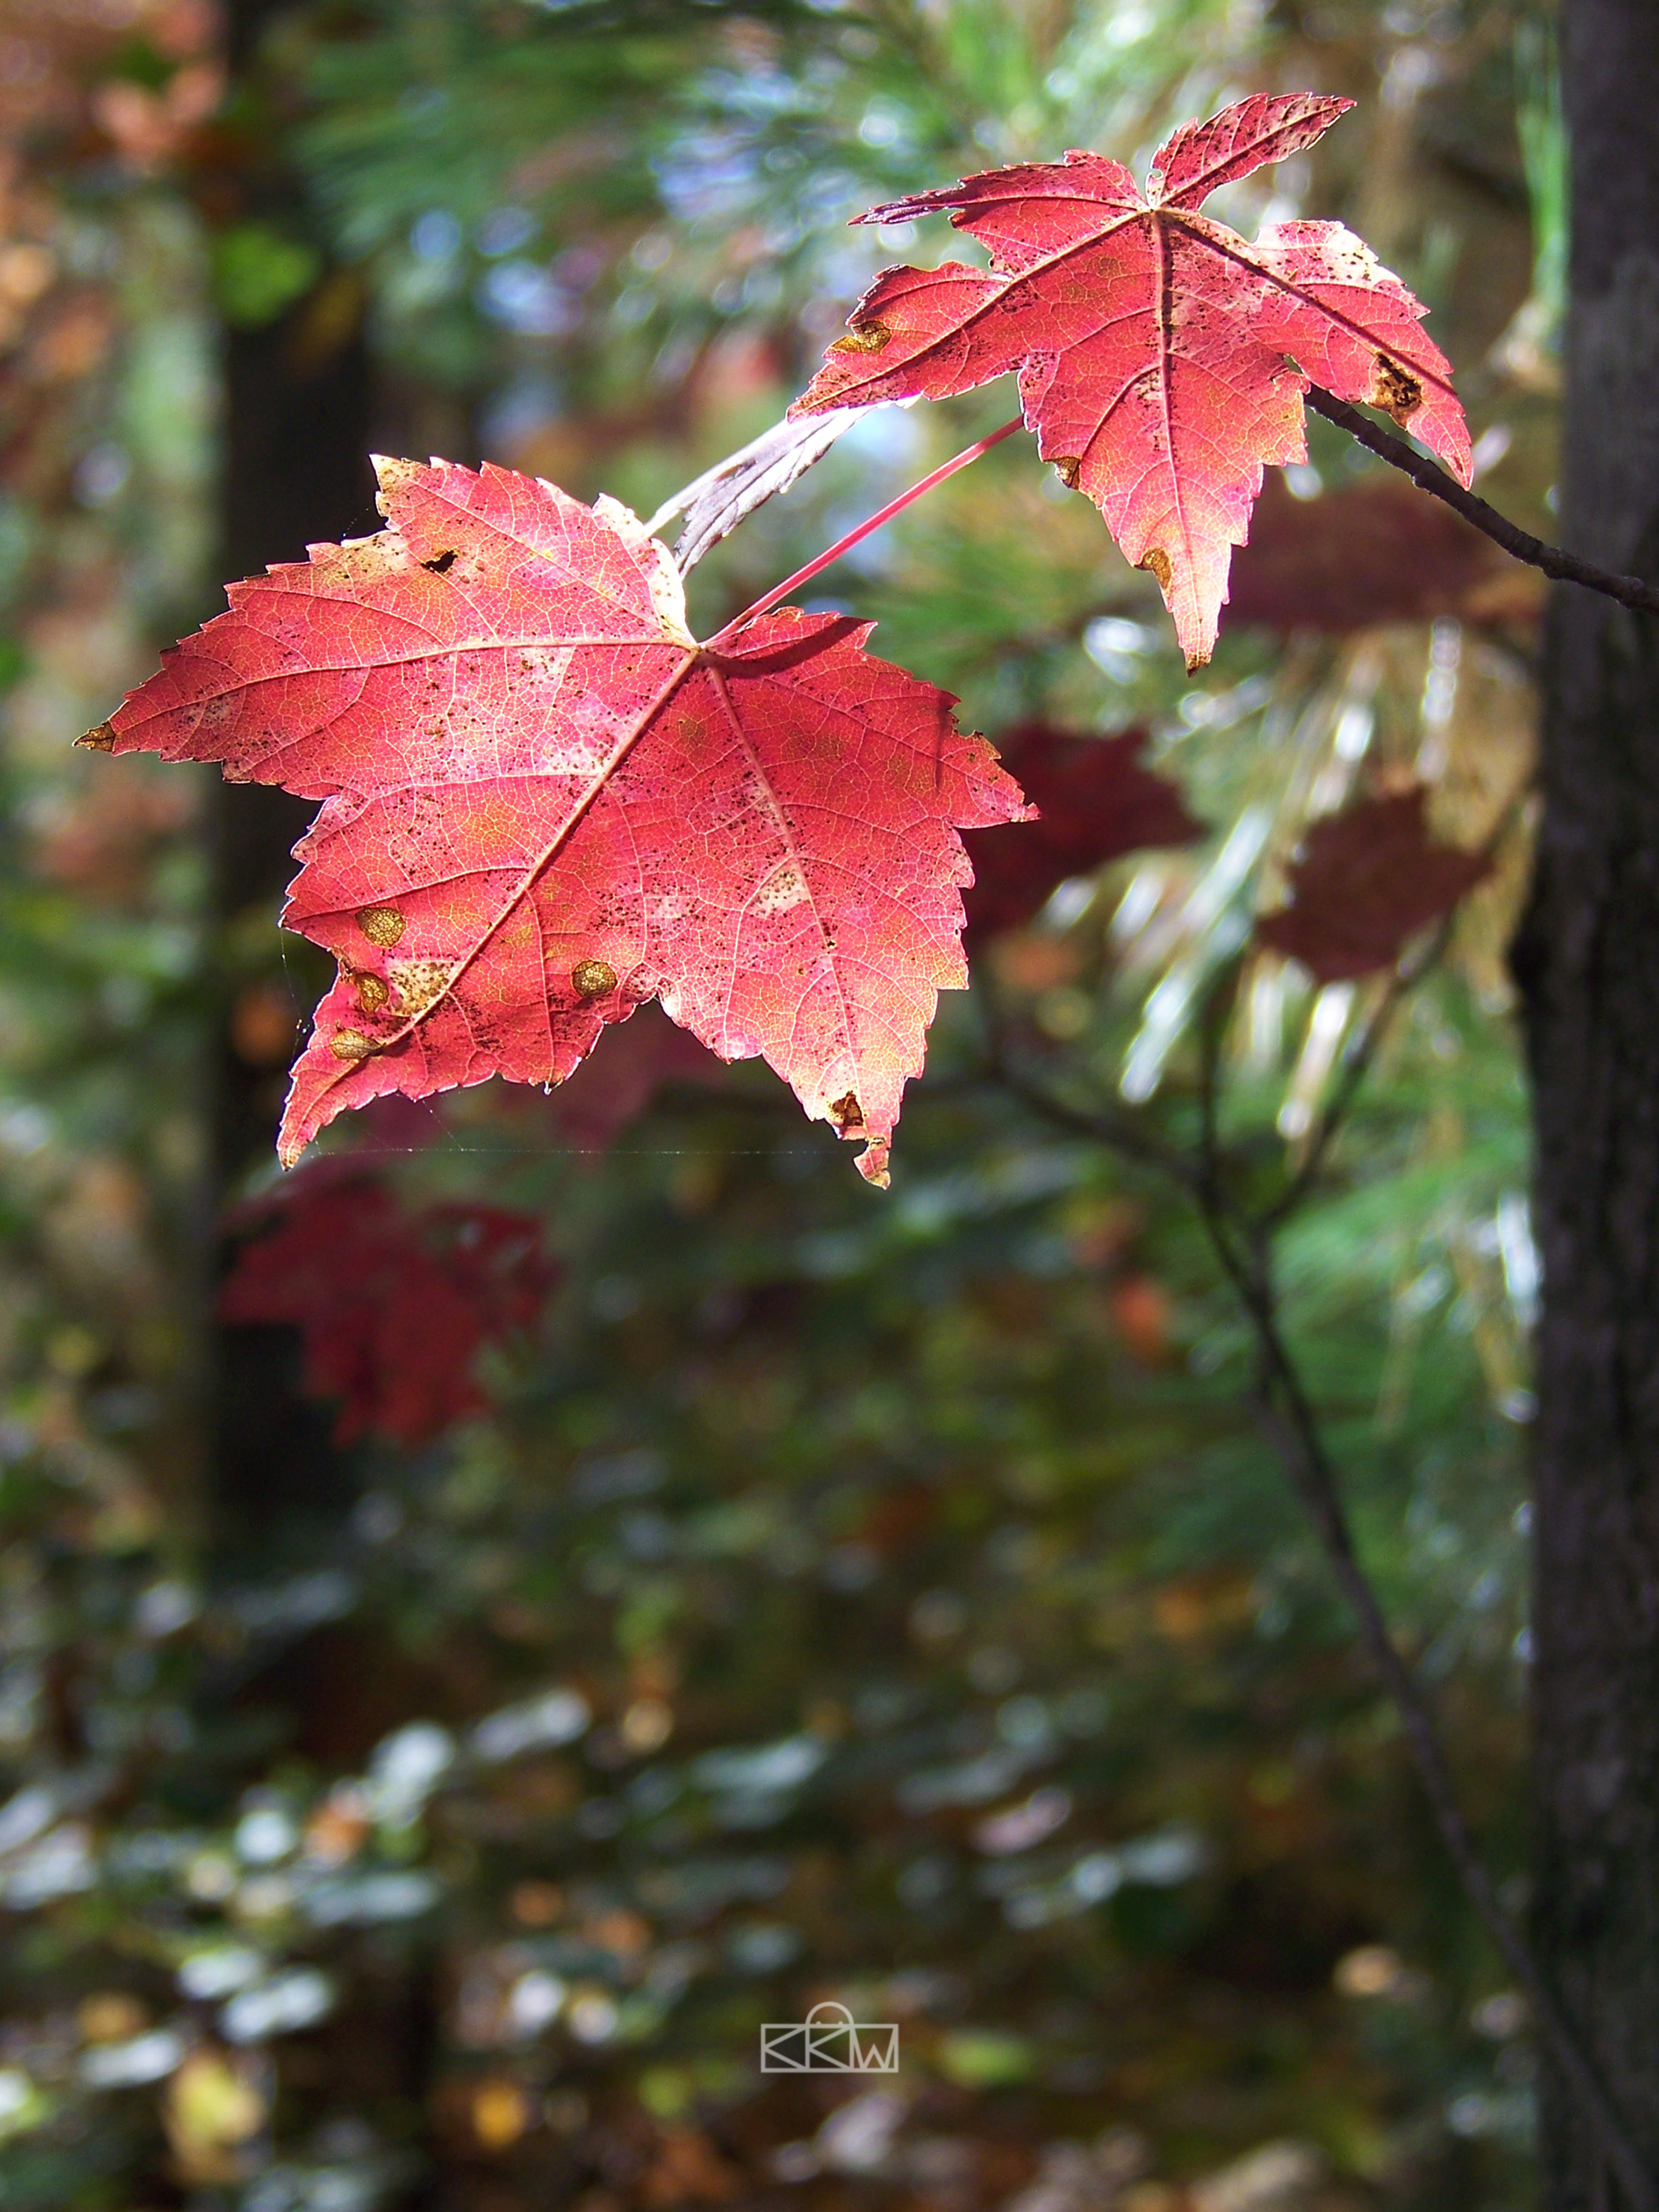 More Pretty Red Leaves (of Death) by Crigger